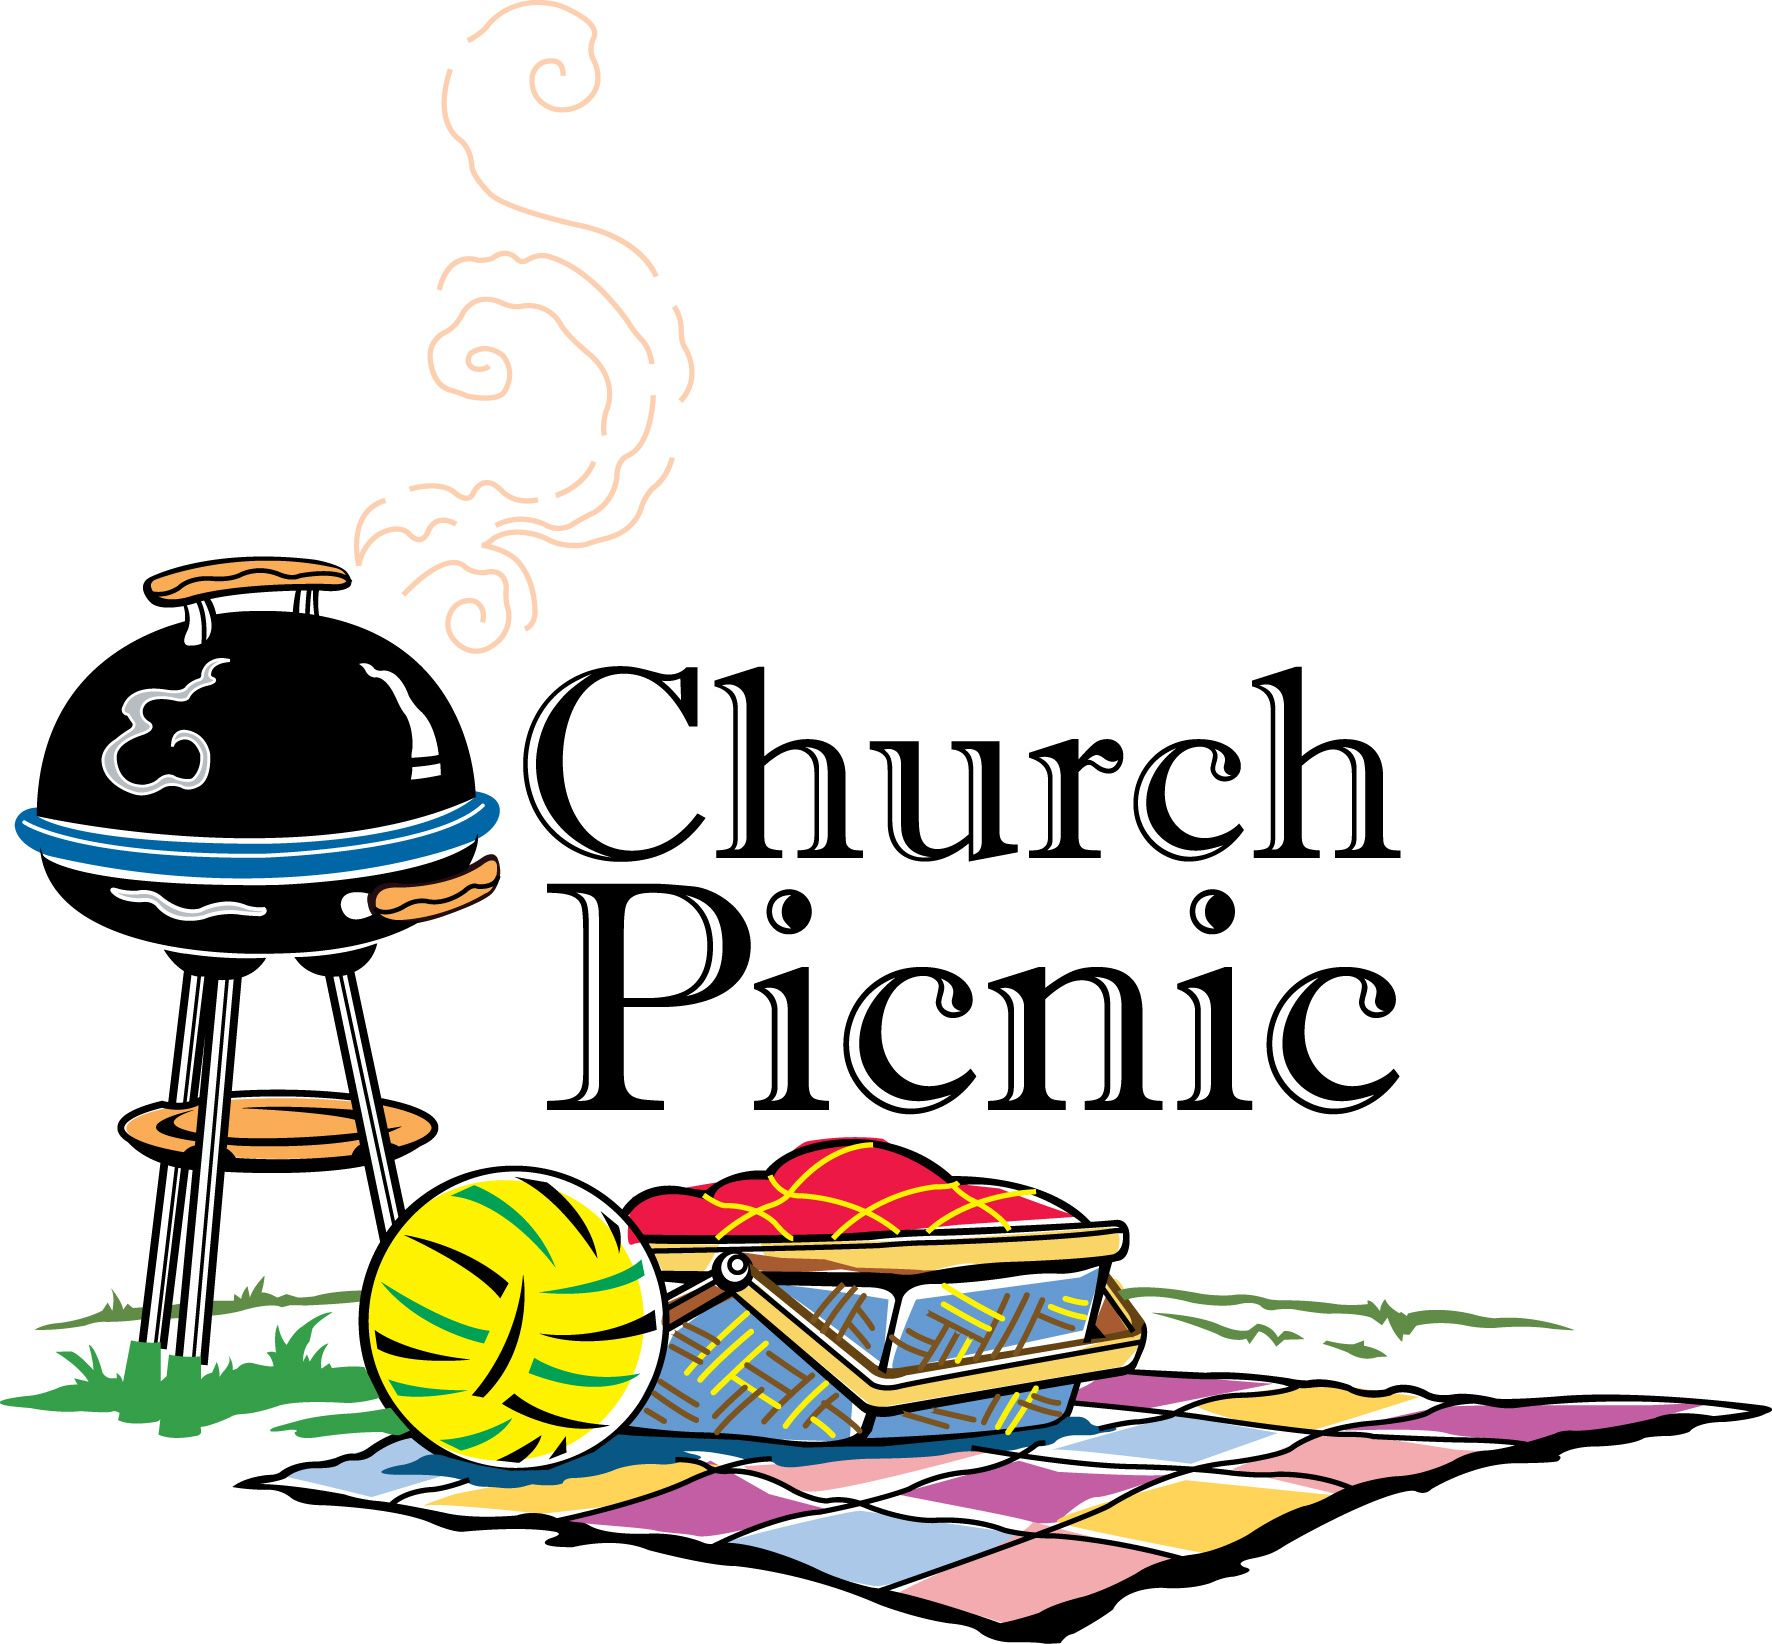 company picnic clipart clipart panda free clipart images party rh pinterest com family having a picnic clipart family picnic clipart free